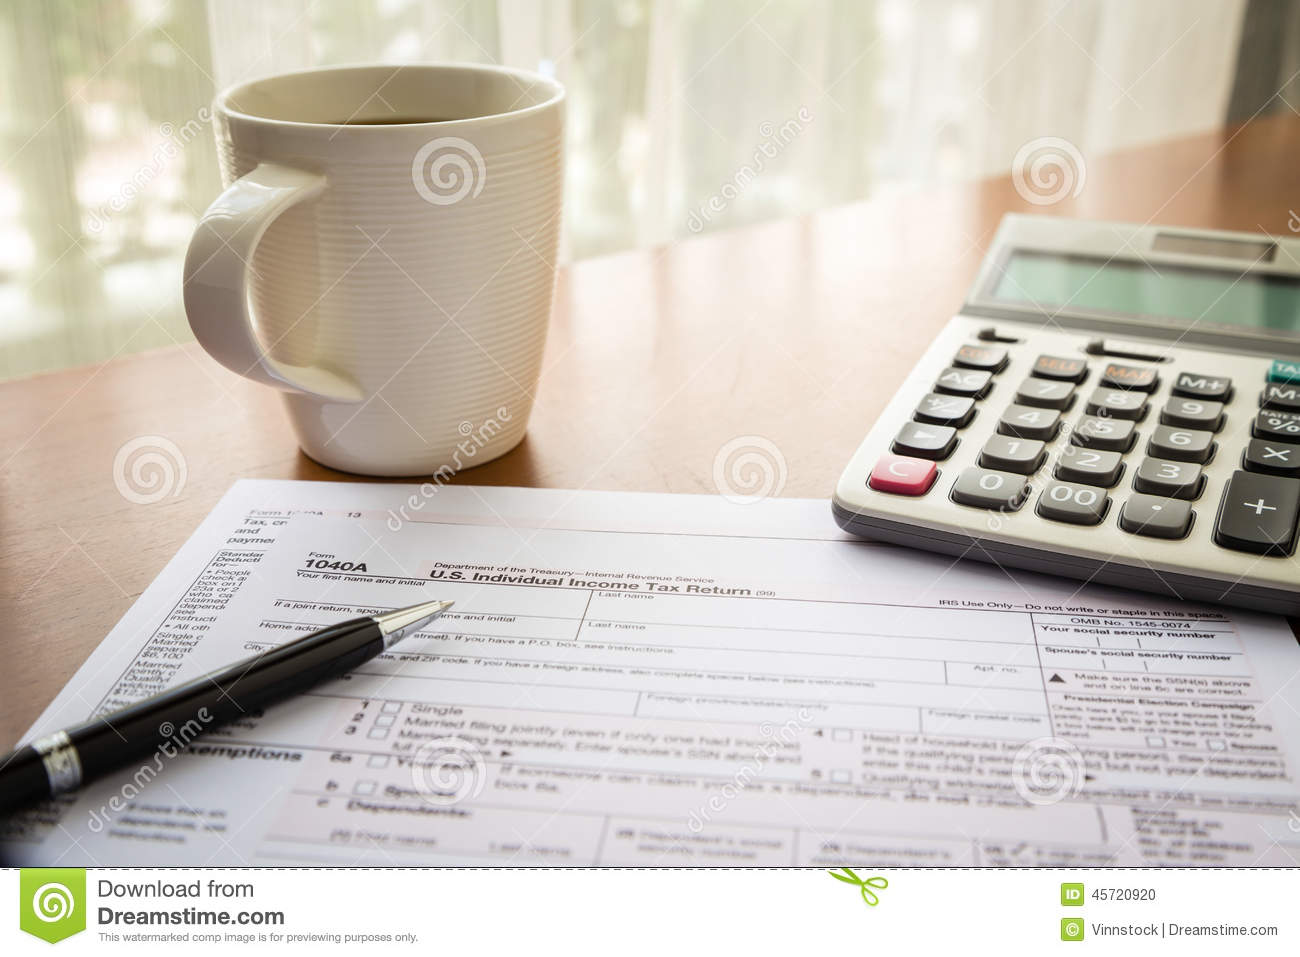 Form 1040a u s individual income tax return stock photo for 1040 a 2011 tax table